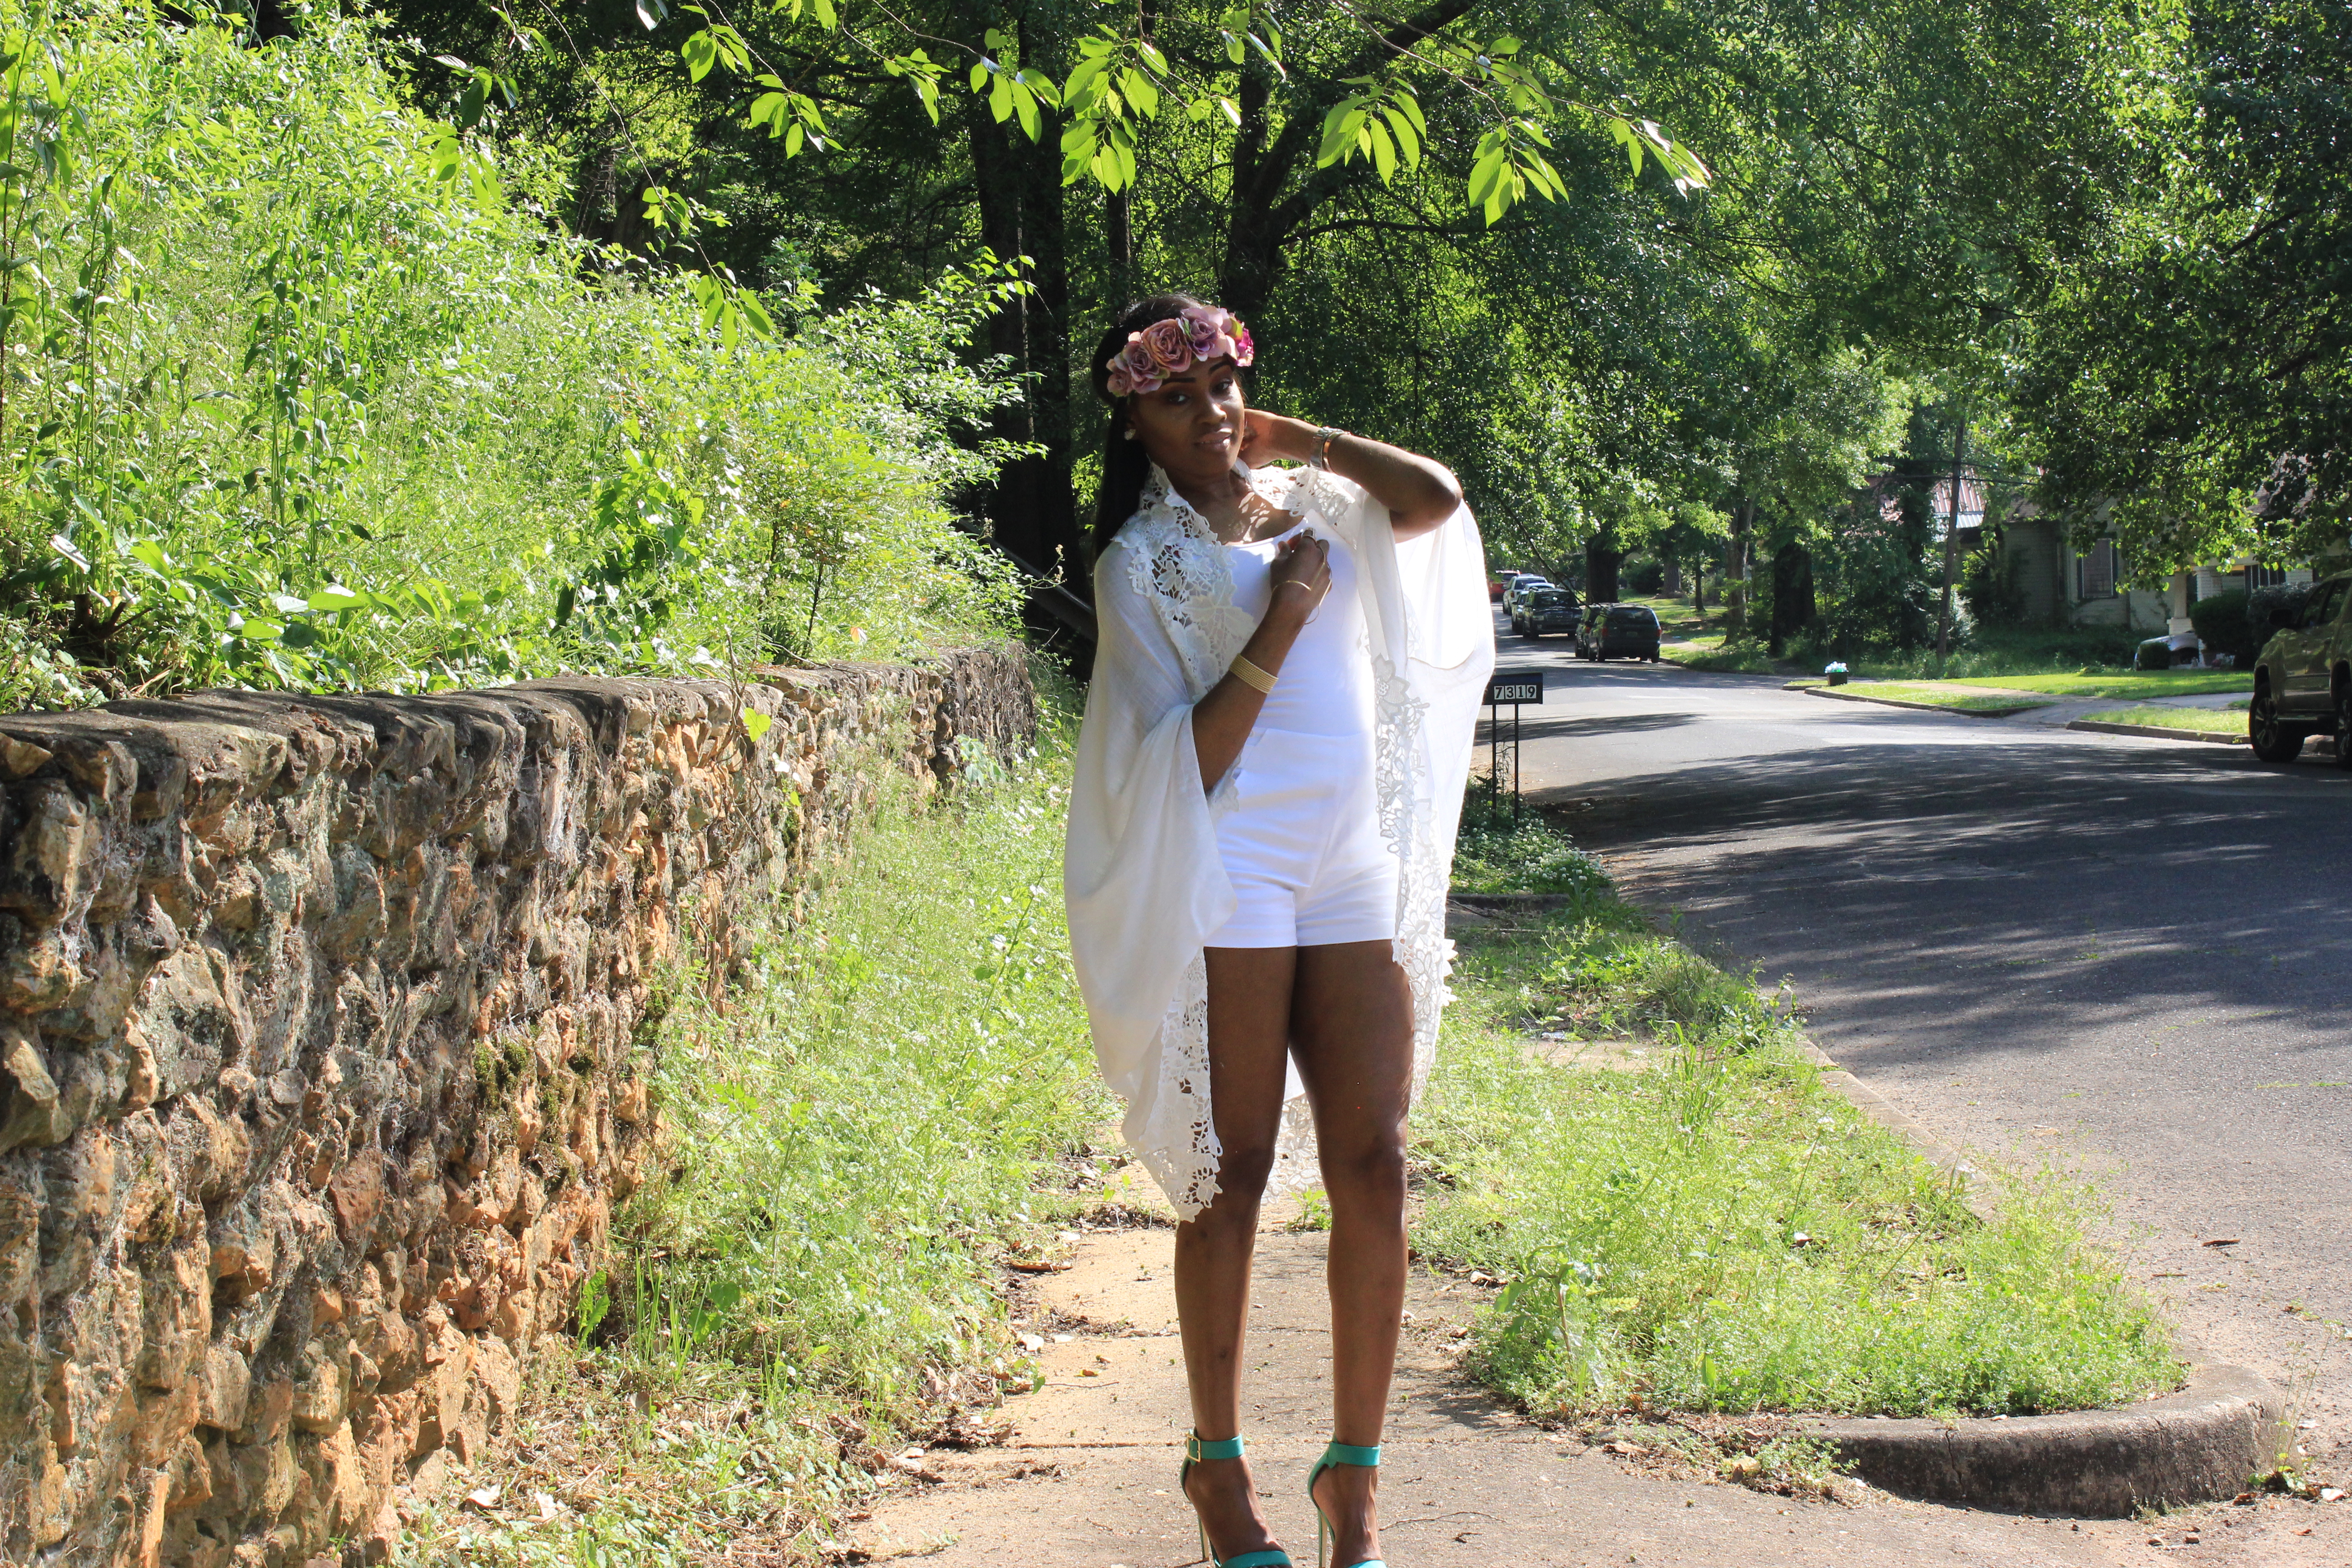 Style-Files-Target-Merona-White-Cocoon-forever21-White-high-waist-shorts-justfab-Paean-seafoam-sandals-flower-headband-Oohlalablog-22